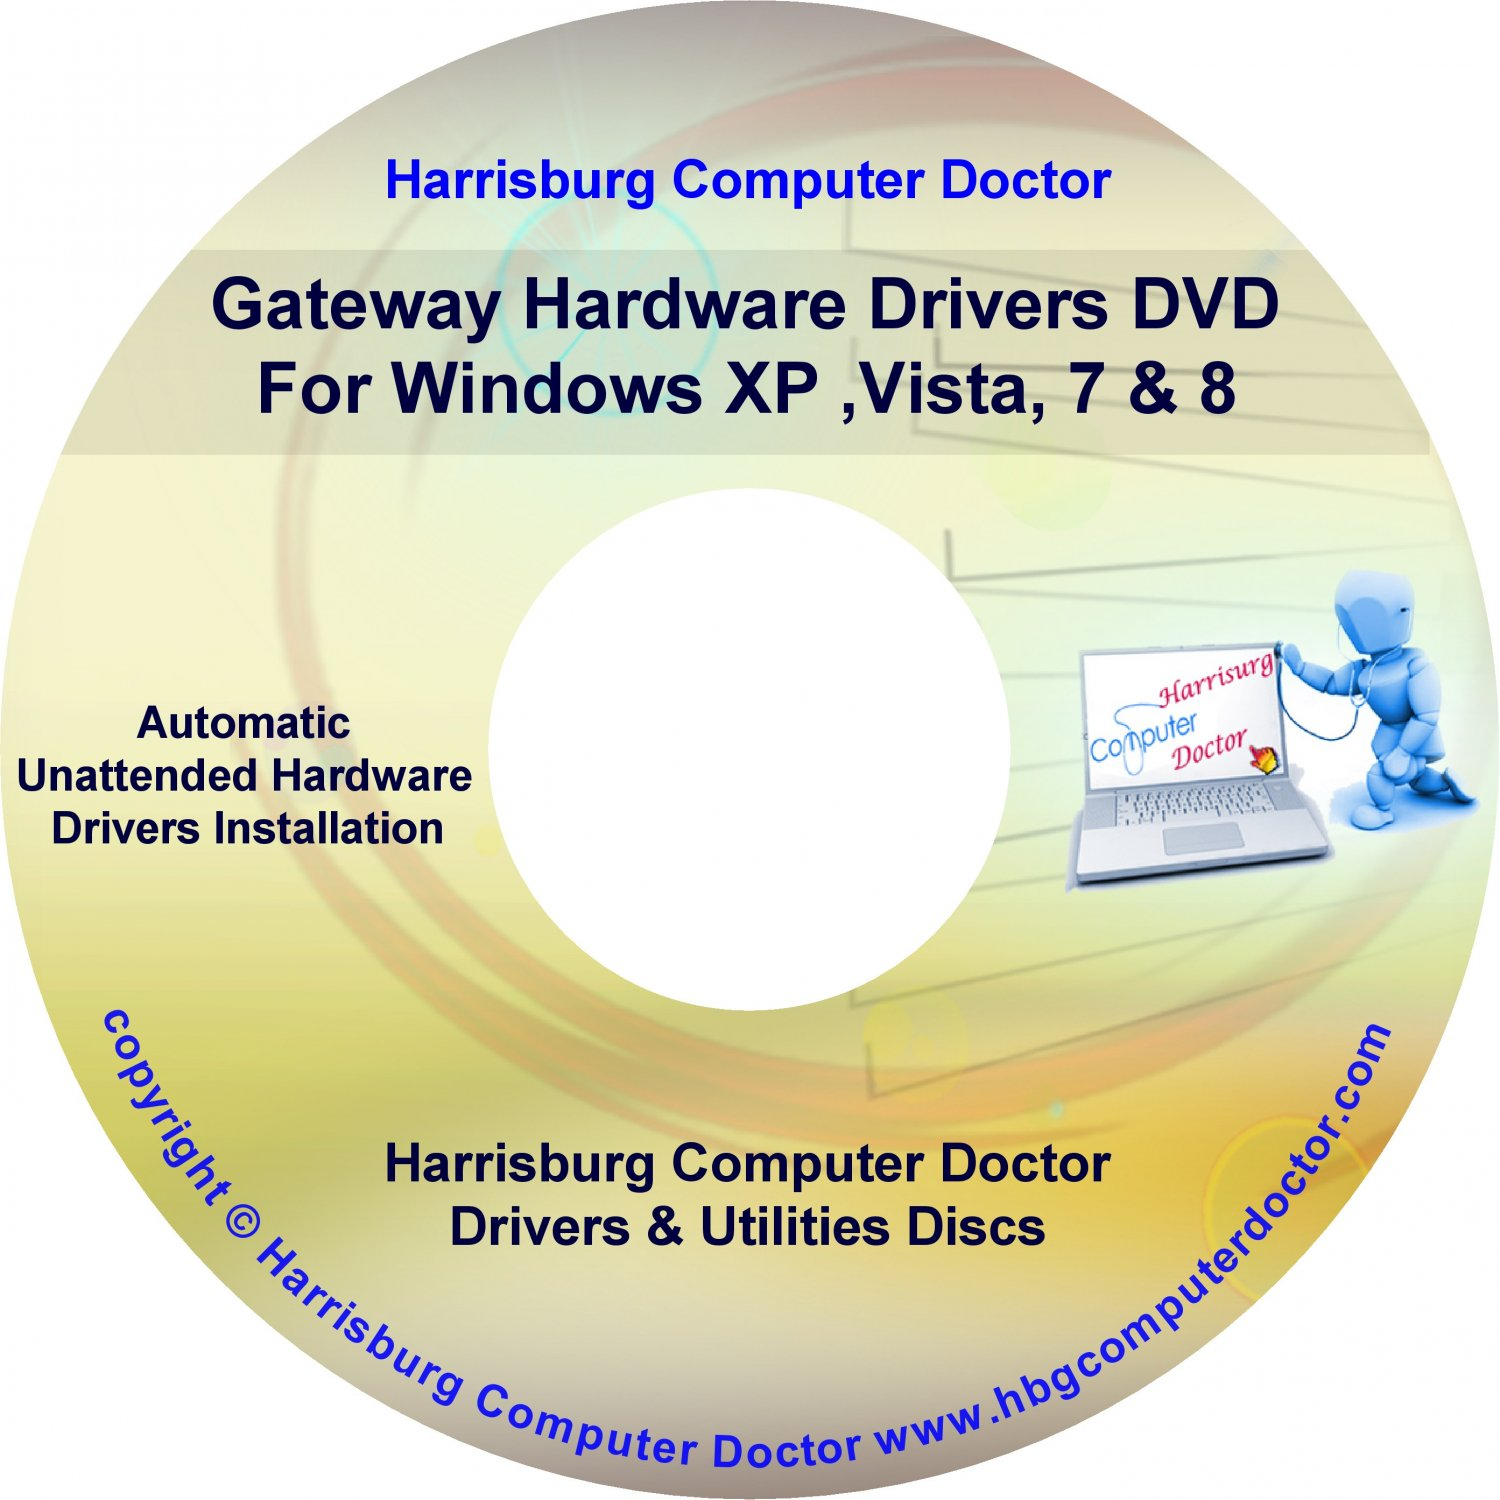 Gateway P-7  Drivers DVD For Windows, XP, Vista, 7 & 8